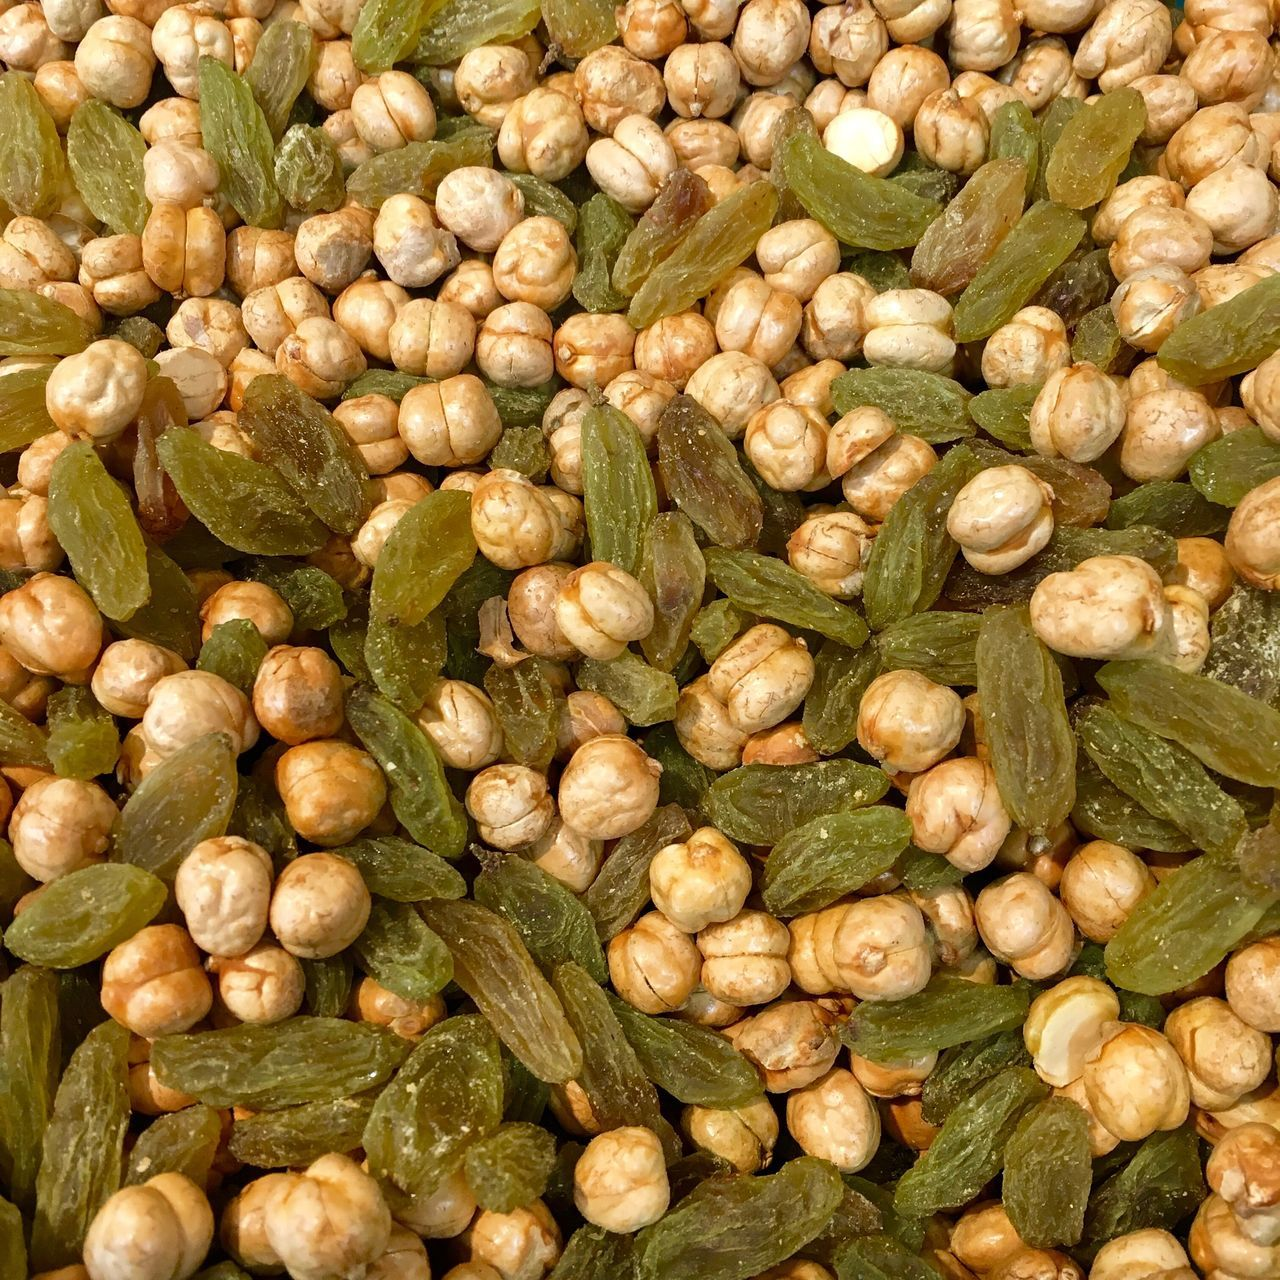 Large Group Of Objects Freshness Food And Drink Healthy Eating Abundance Full Frame Food No People Backgrounds Seeds Nutrition Chickpeas Grains Oilseeds Green Raisin Seeds Of Life Seeds And Dry Fruits Colors Colors Of Nature Nut - Food Snacks Healthy Healty Food Seeds Photography